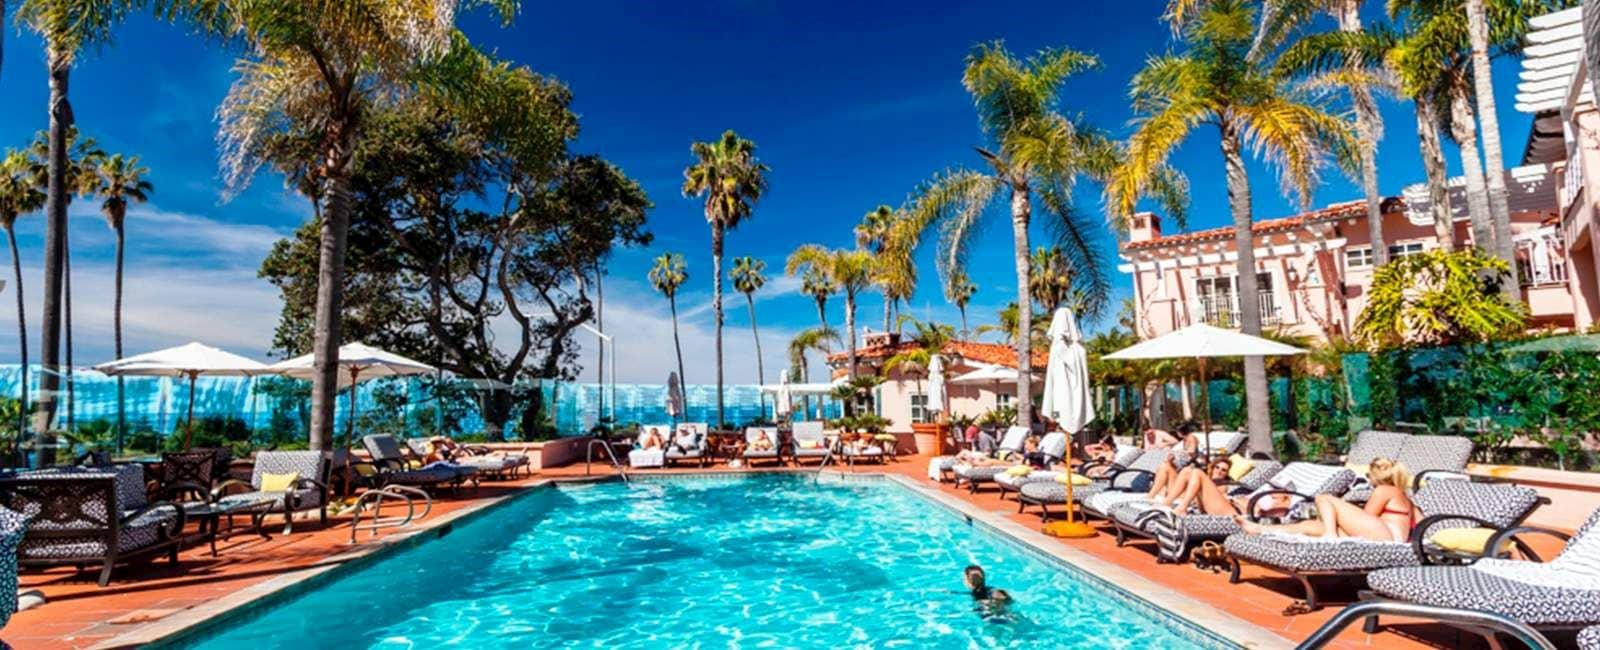 Email Offers by La Valencia Hotel and Spa